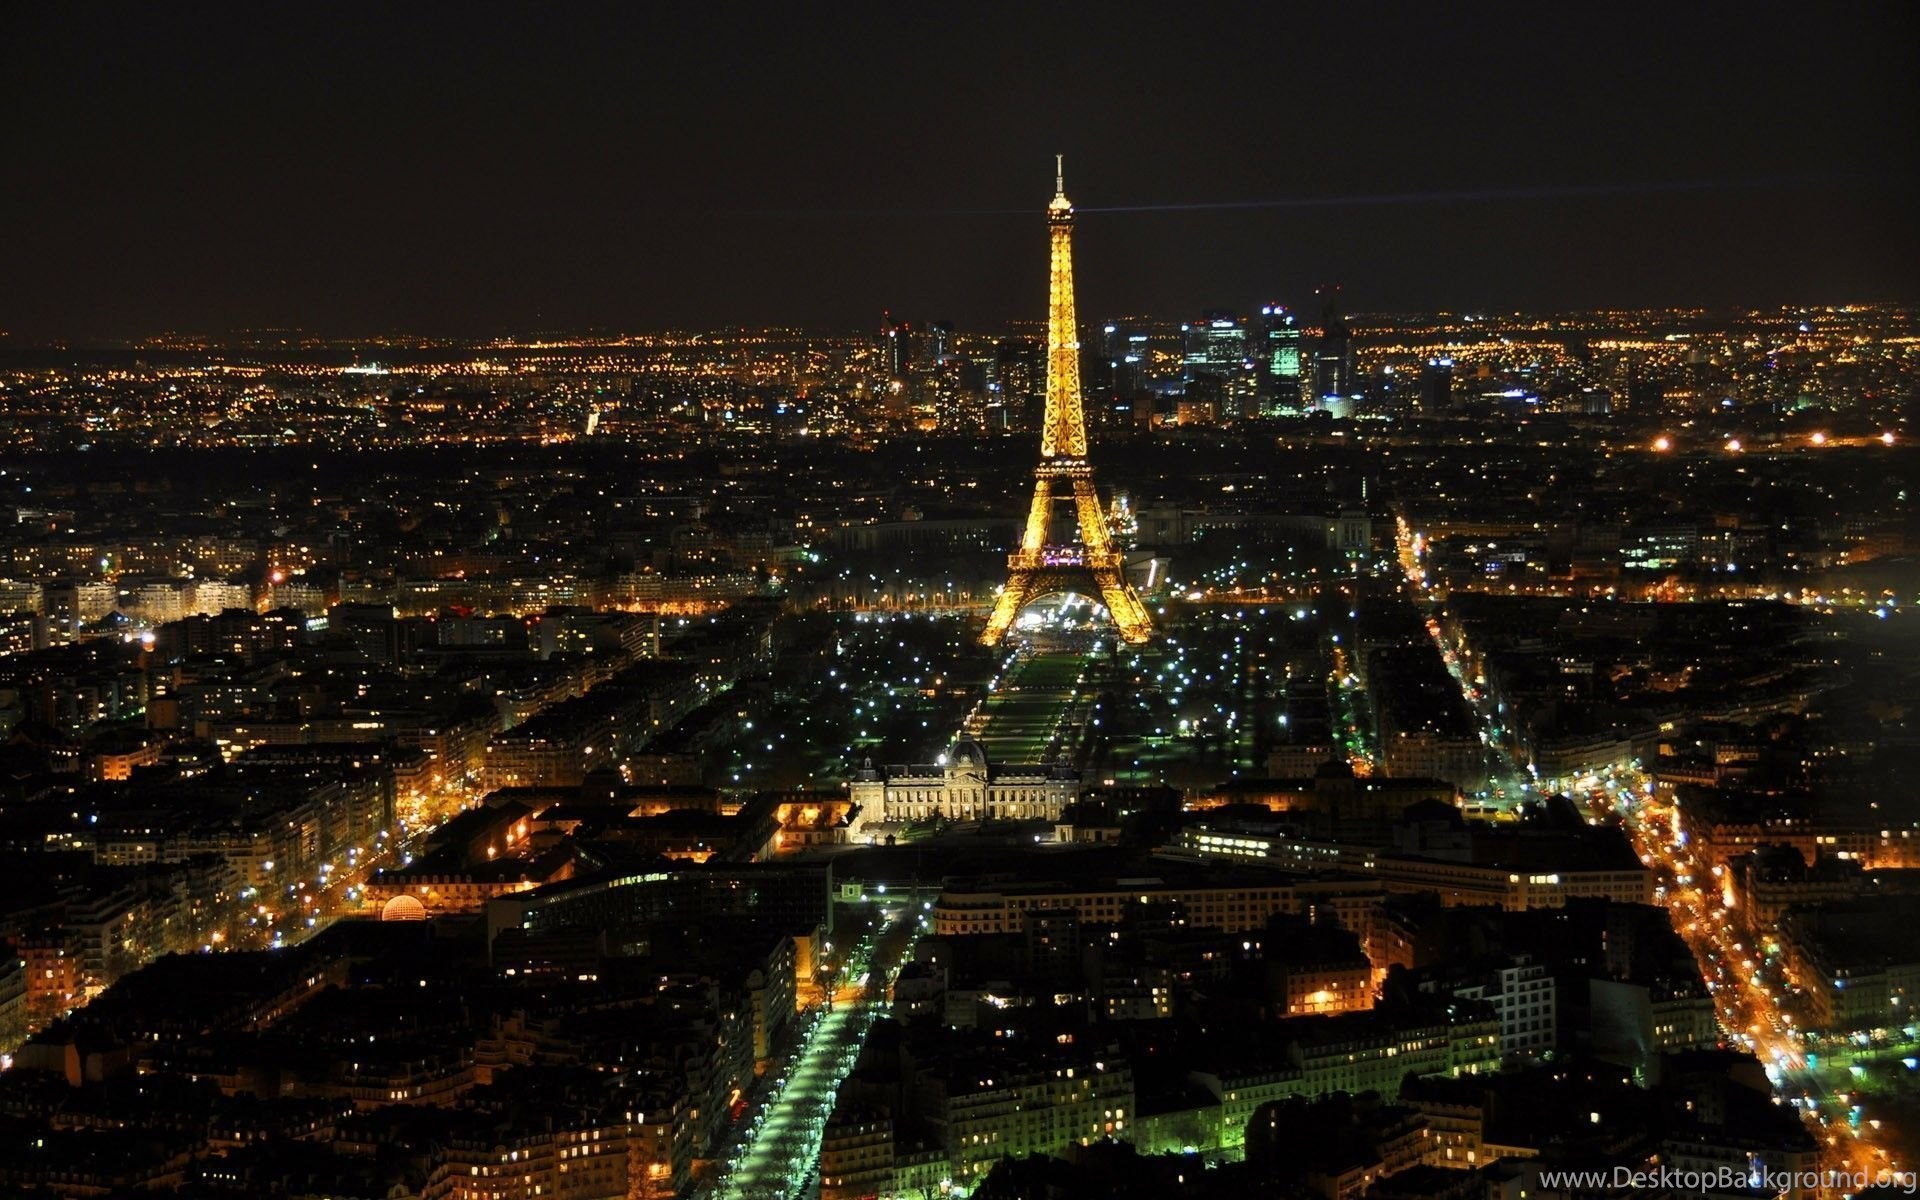 1920x1080 Wallpaper Eiffel Tower Paris France Night